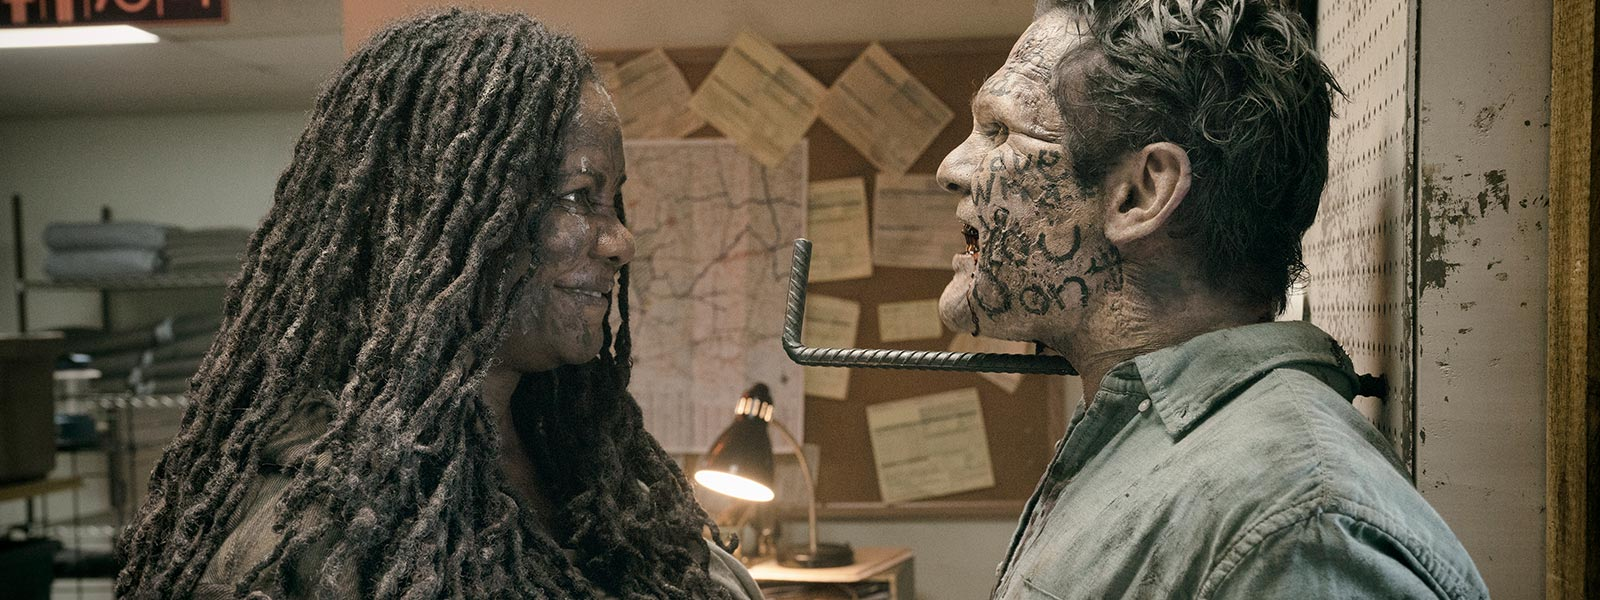 fear-the-walking-dead-episode-411-martha-pickens-post-800×600